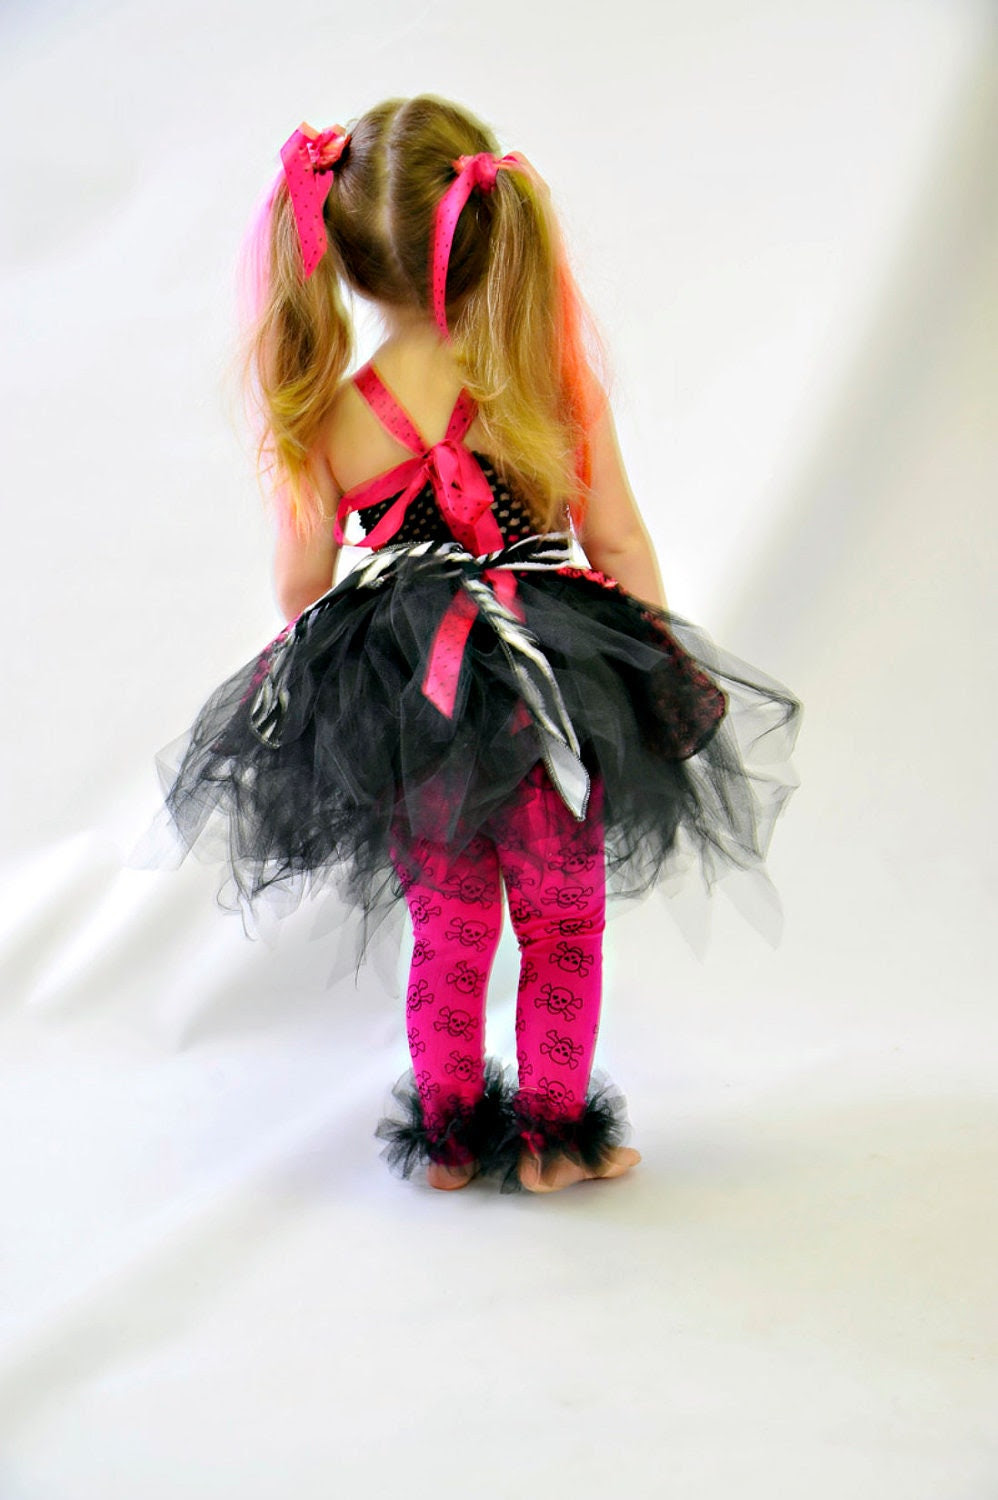 Monster High tutu dress with Apron 2pc set by Little Bunny Tutu - Perfect for Birthday or Halloween Costume - fits most girls size 2-4T